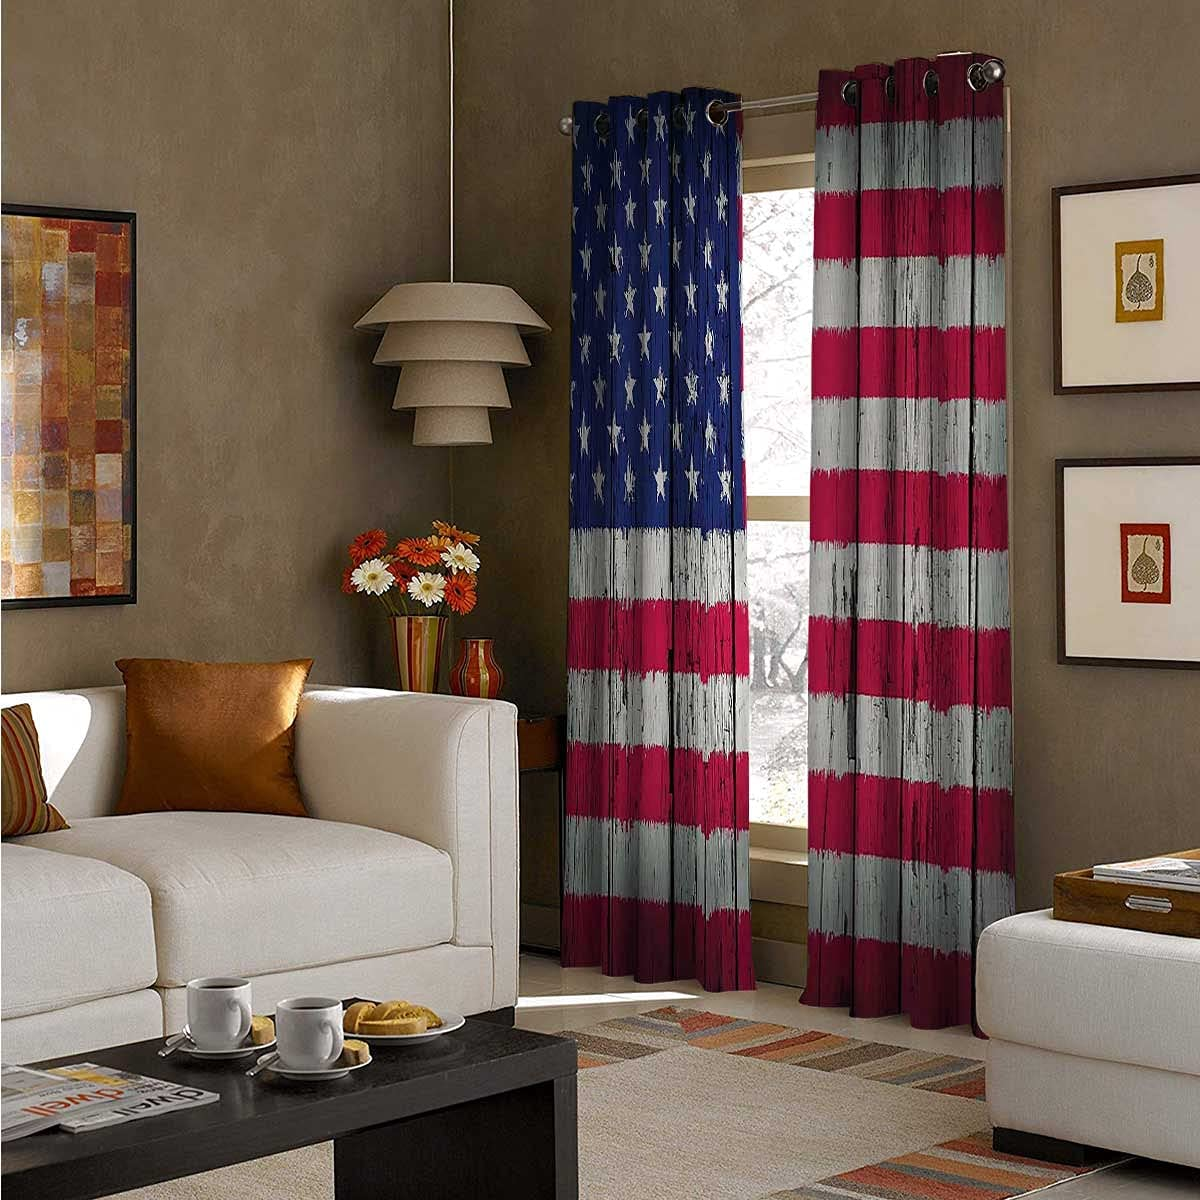 Grommet Curtain Phoenix Mall Panel latest 108 Inch Long Roo Day Fourth July Freedom